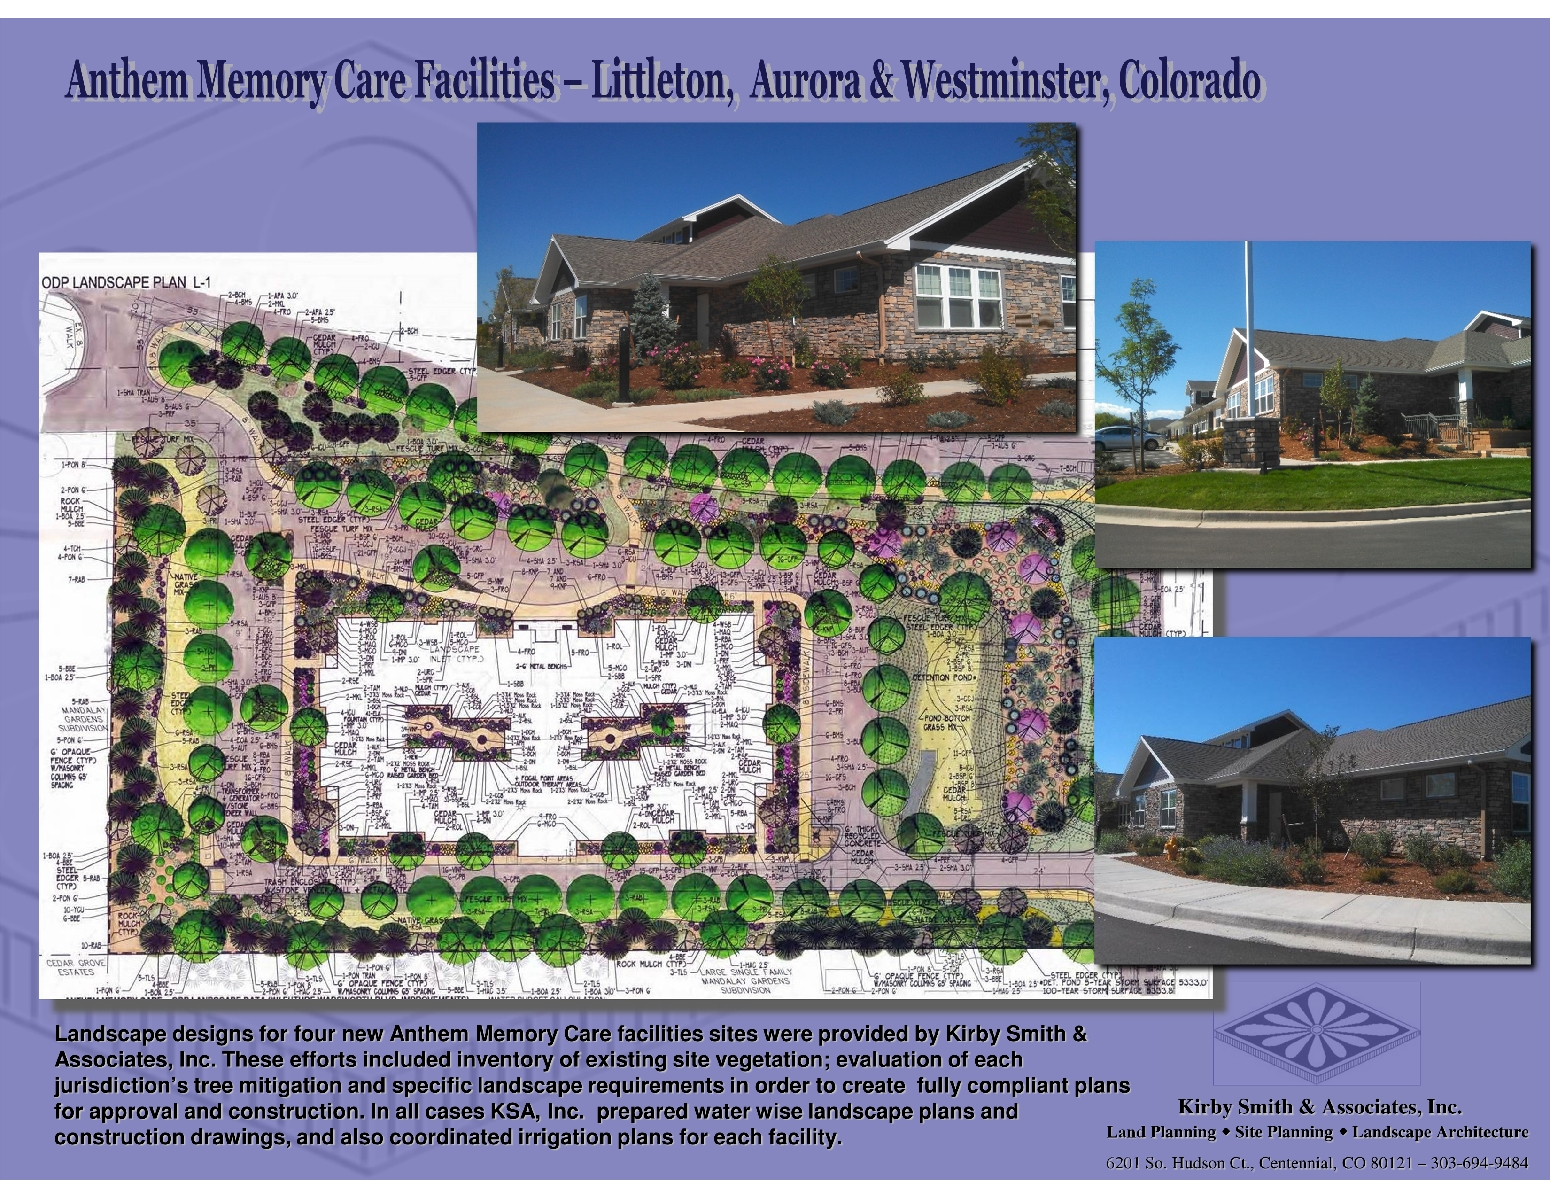 Landscape designs for four new Anthem Memory Care facilities sites were provided by Kirby Smith & Associates, Inc. These efforts included inventory of existing site vegetation; evaluation of each jurisdiction's tree mitigation and specific landscape requirements in order to create  fully compliant plans for approval and construction. In all cases KSA, Inc.  prepared water wise landscape plans and construction drawings, and also coordinated irrigation plans for each facility.